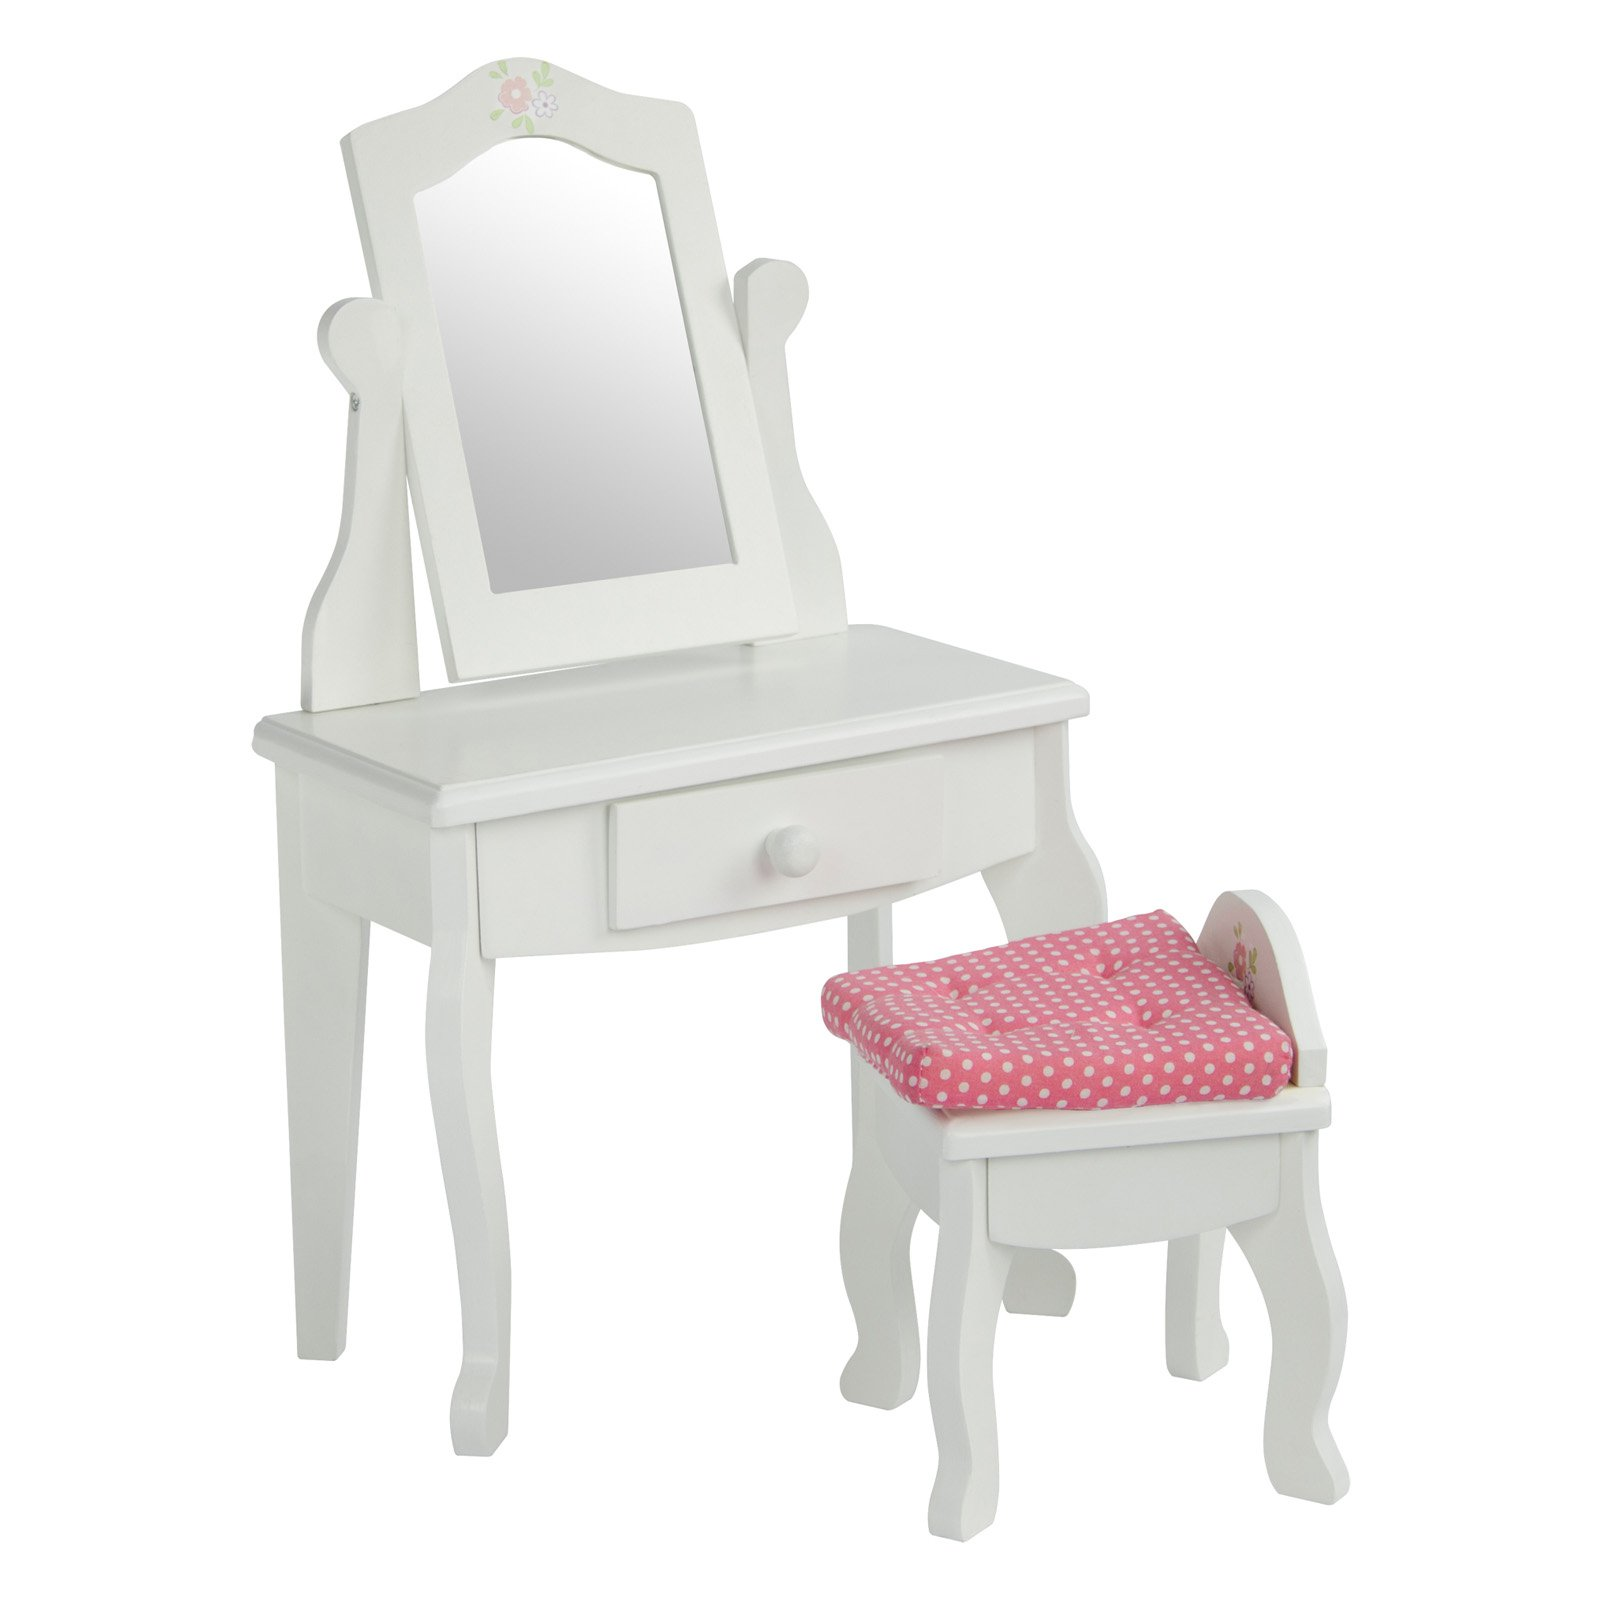 Olivia S Little World Princess 18 Doll Vanity Table Stool Set